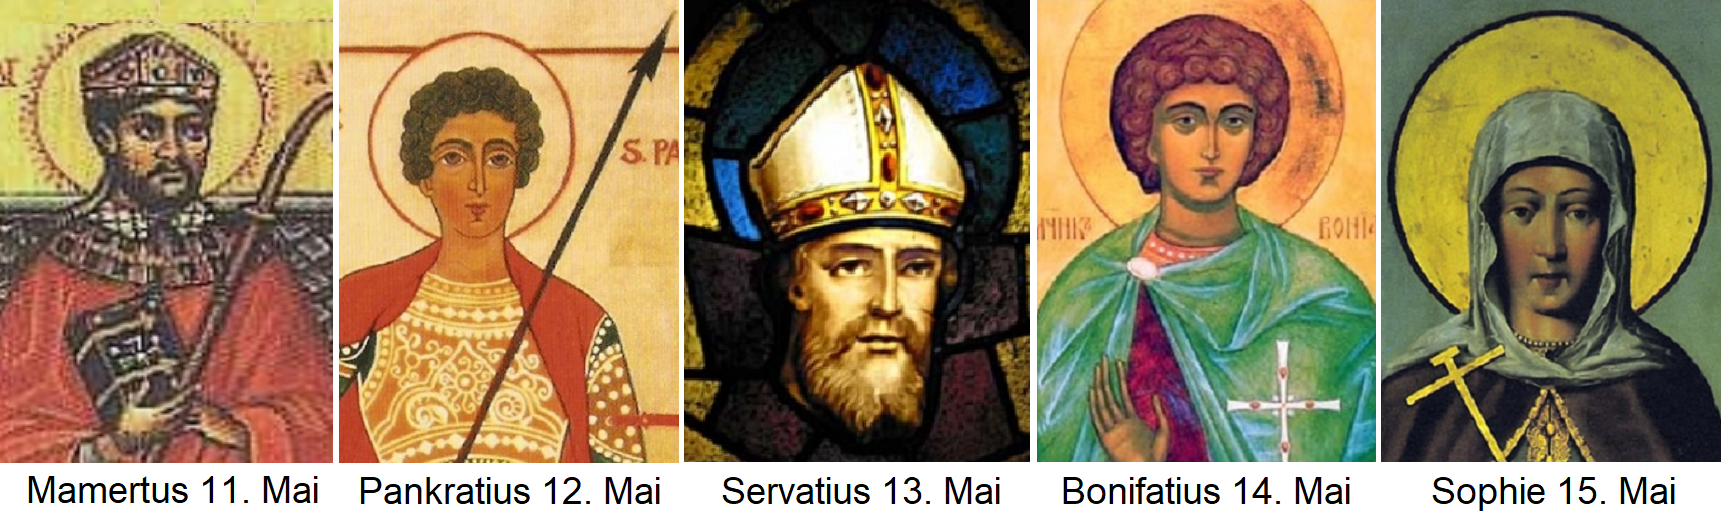 Icy Saints - Mamertus 11th, Pancratius 12th, Servatius 13th, Boniface 14th, Sophie 15th May